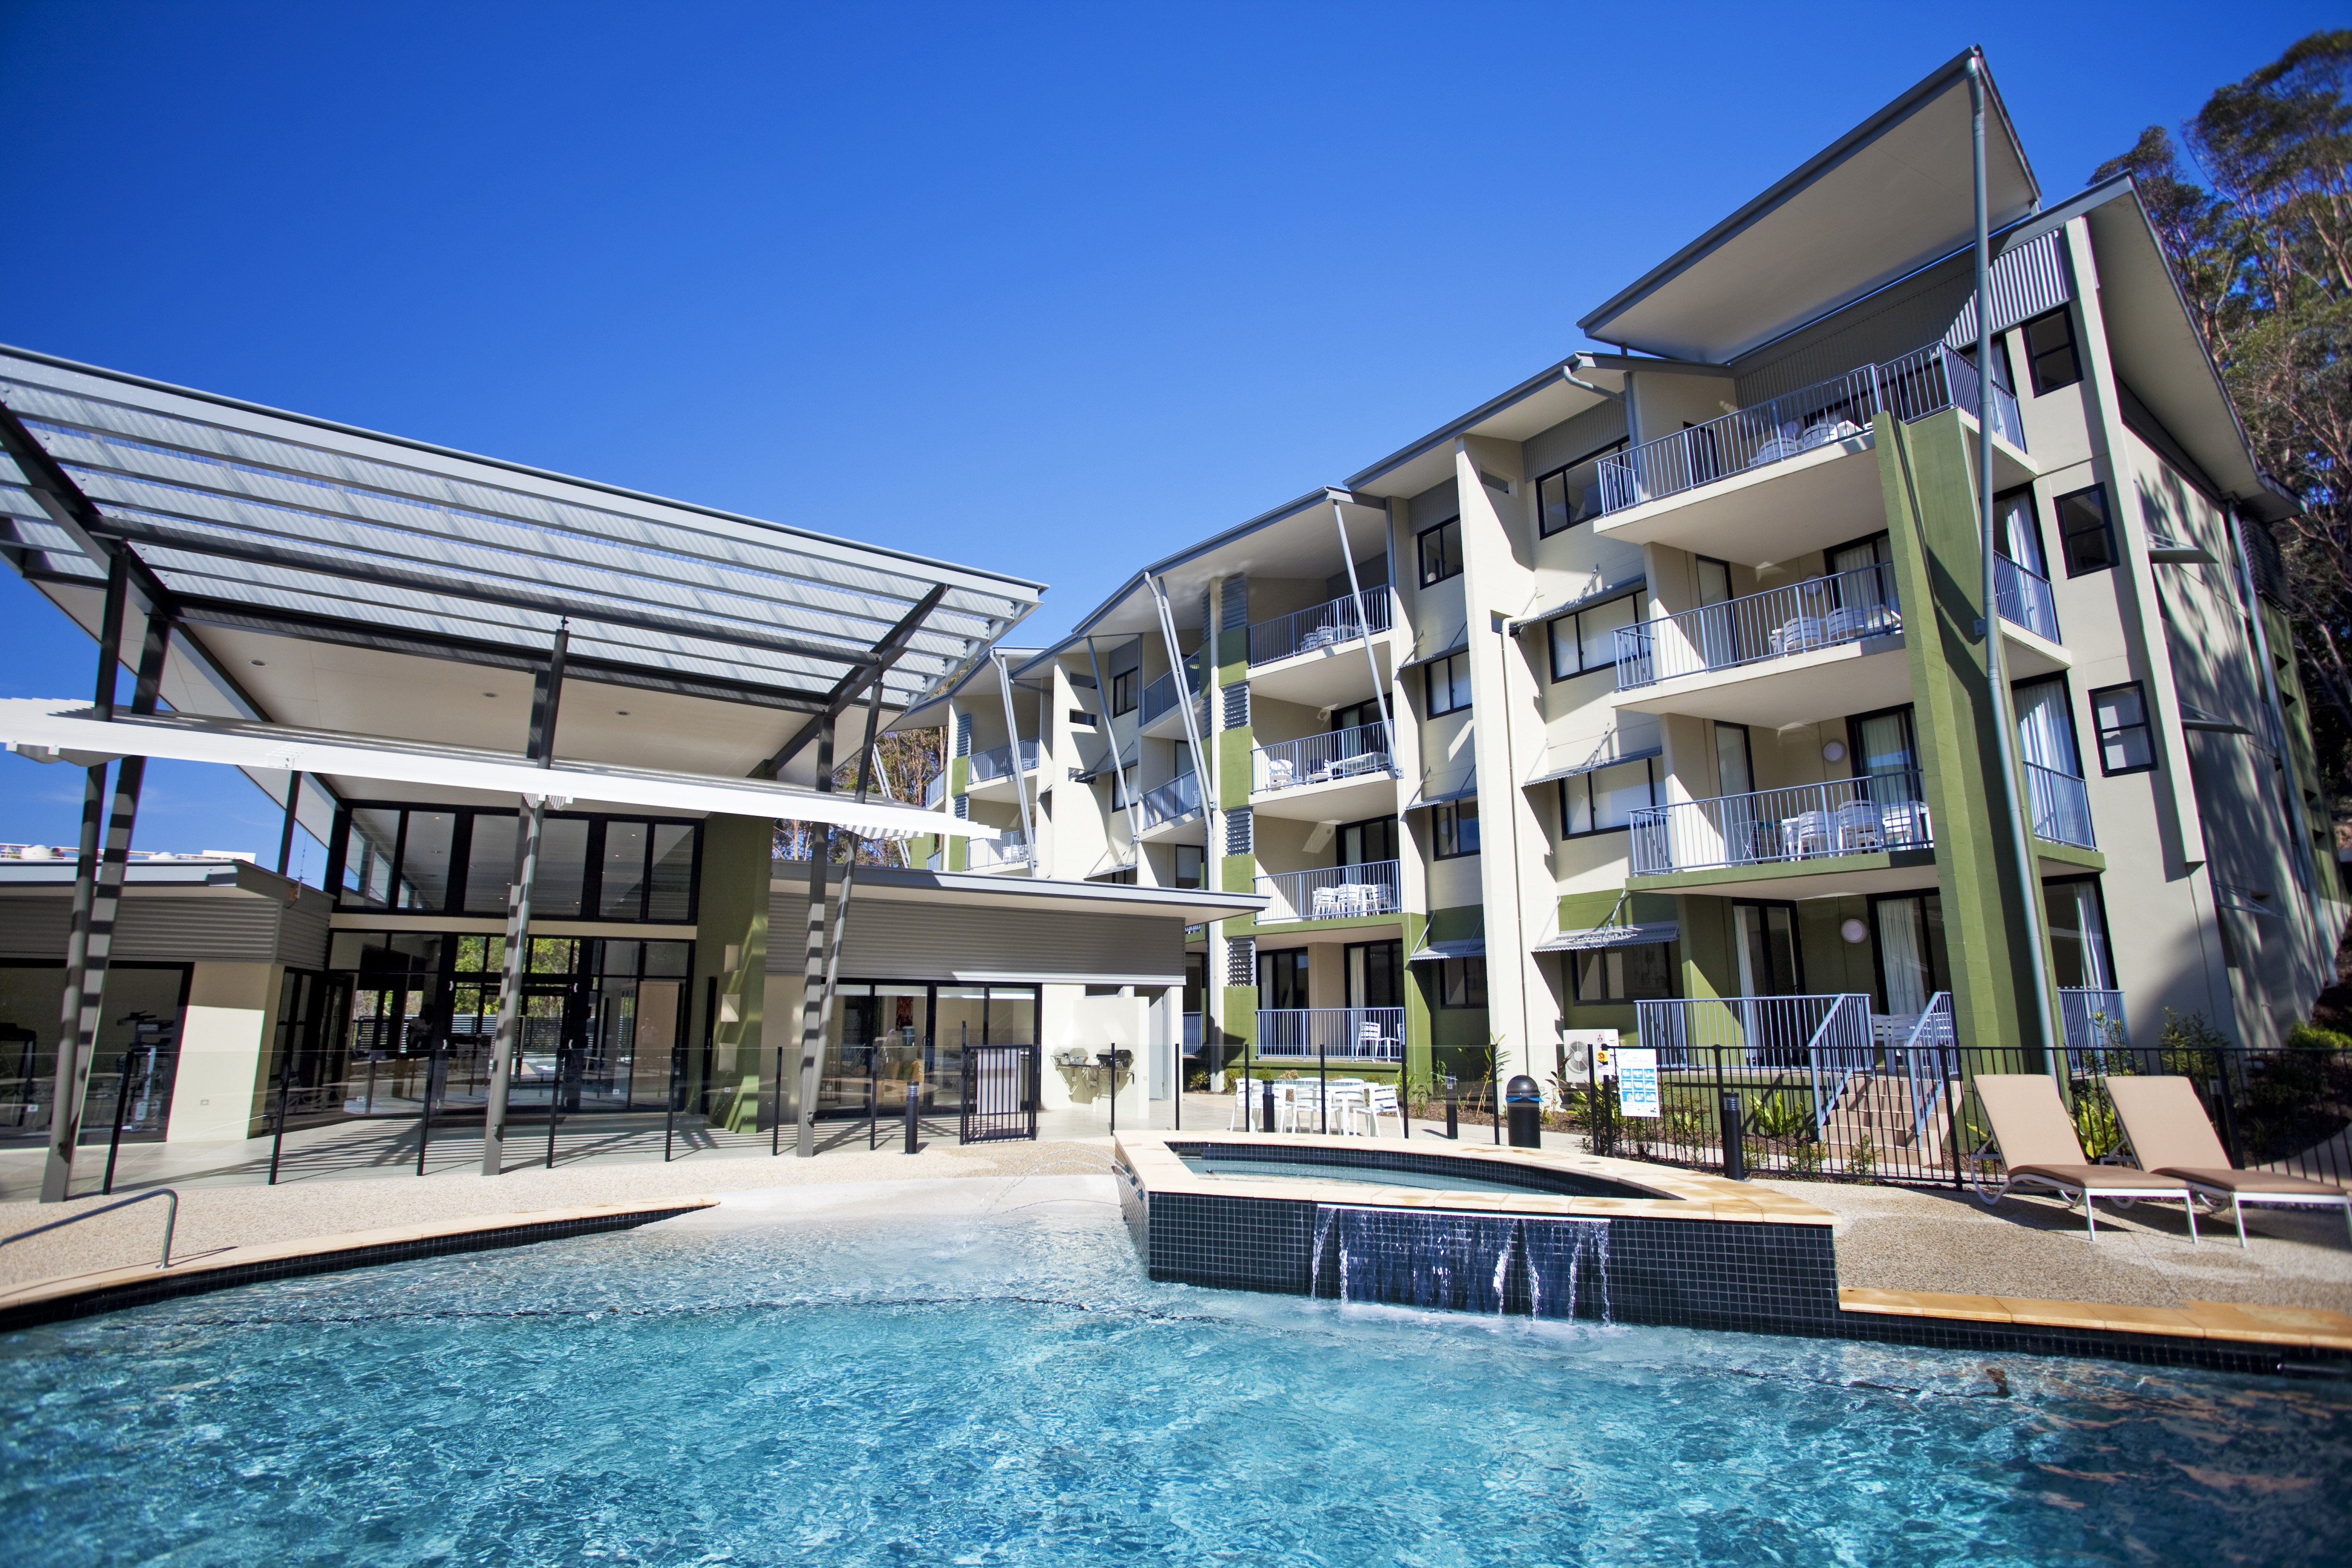 Wyndham coffs harbour a family experience like no other for The wyndham